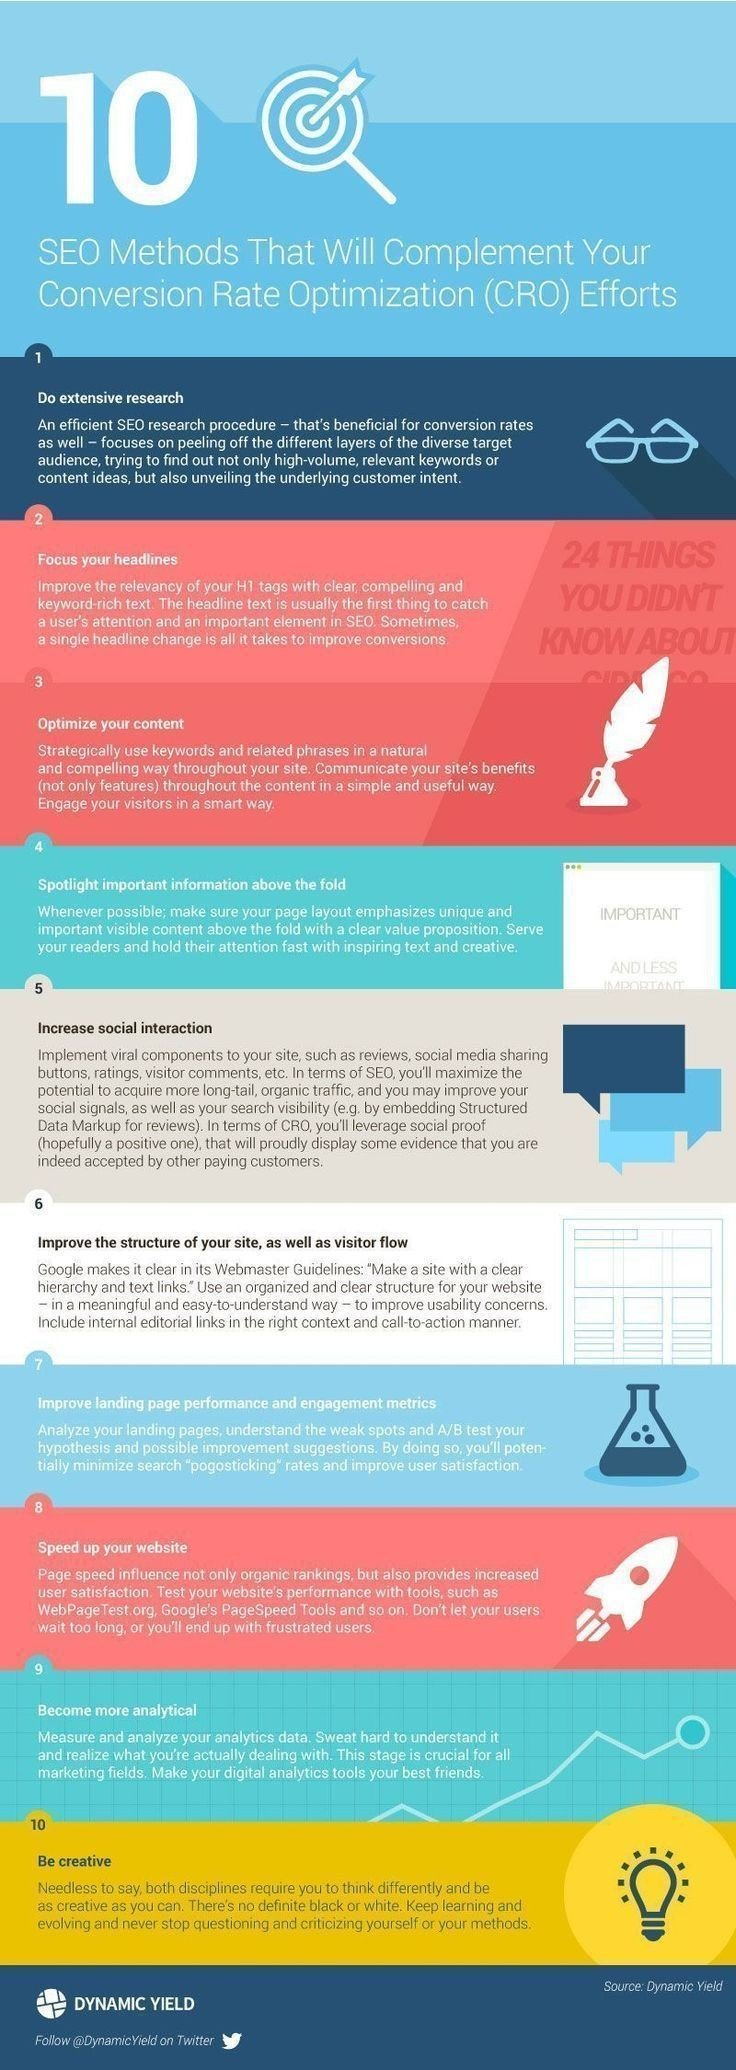 Ten #SEO methods that complement your conversion rate optimization #CRO #SMM #Infographic